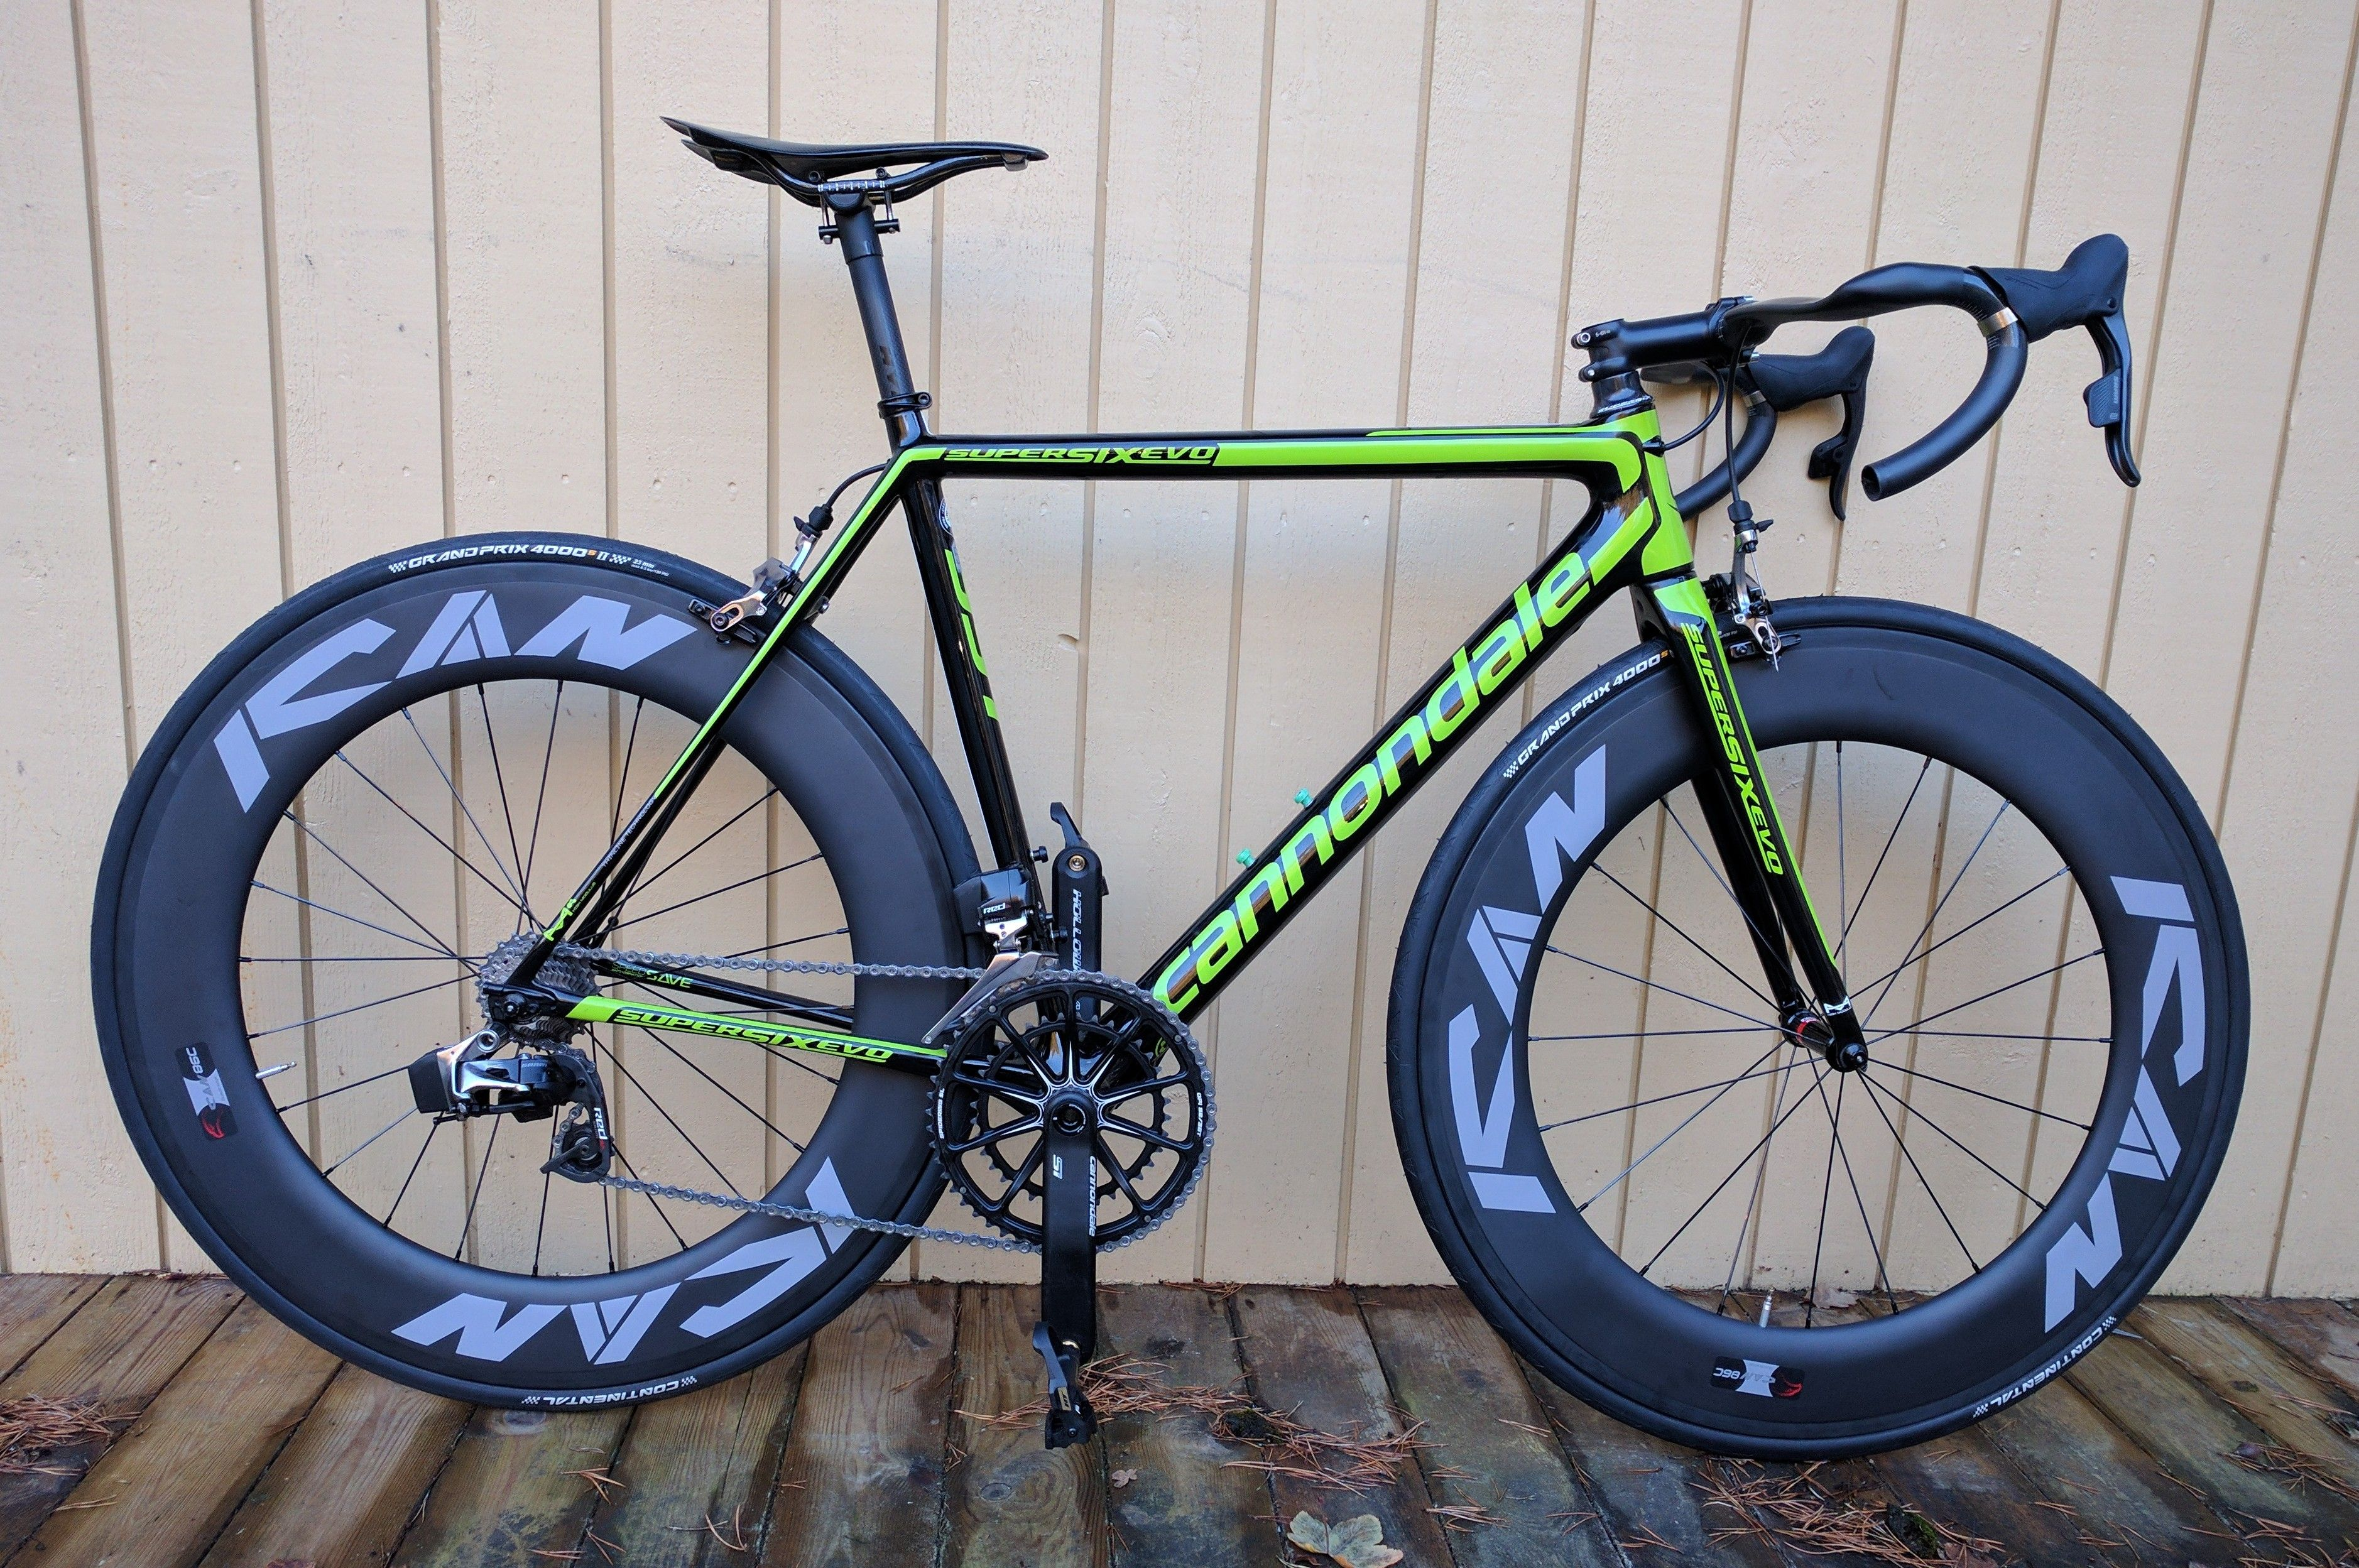 b76969aeccc Ican Full Carbon 86mm Clincher Wheelset Bike Trial